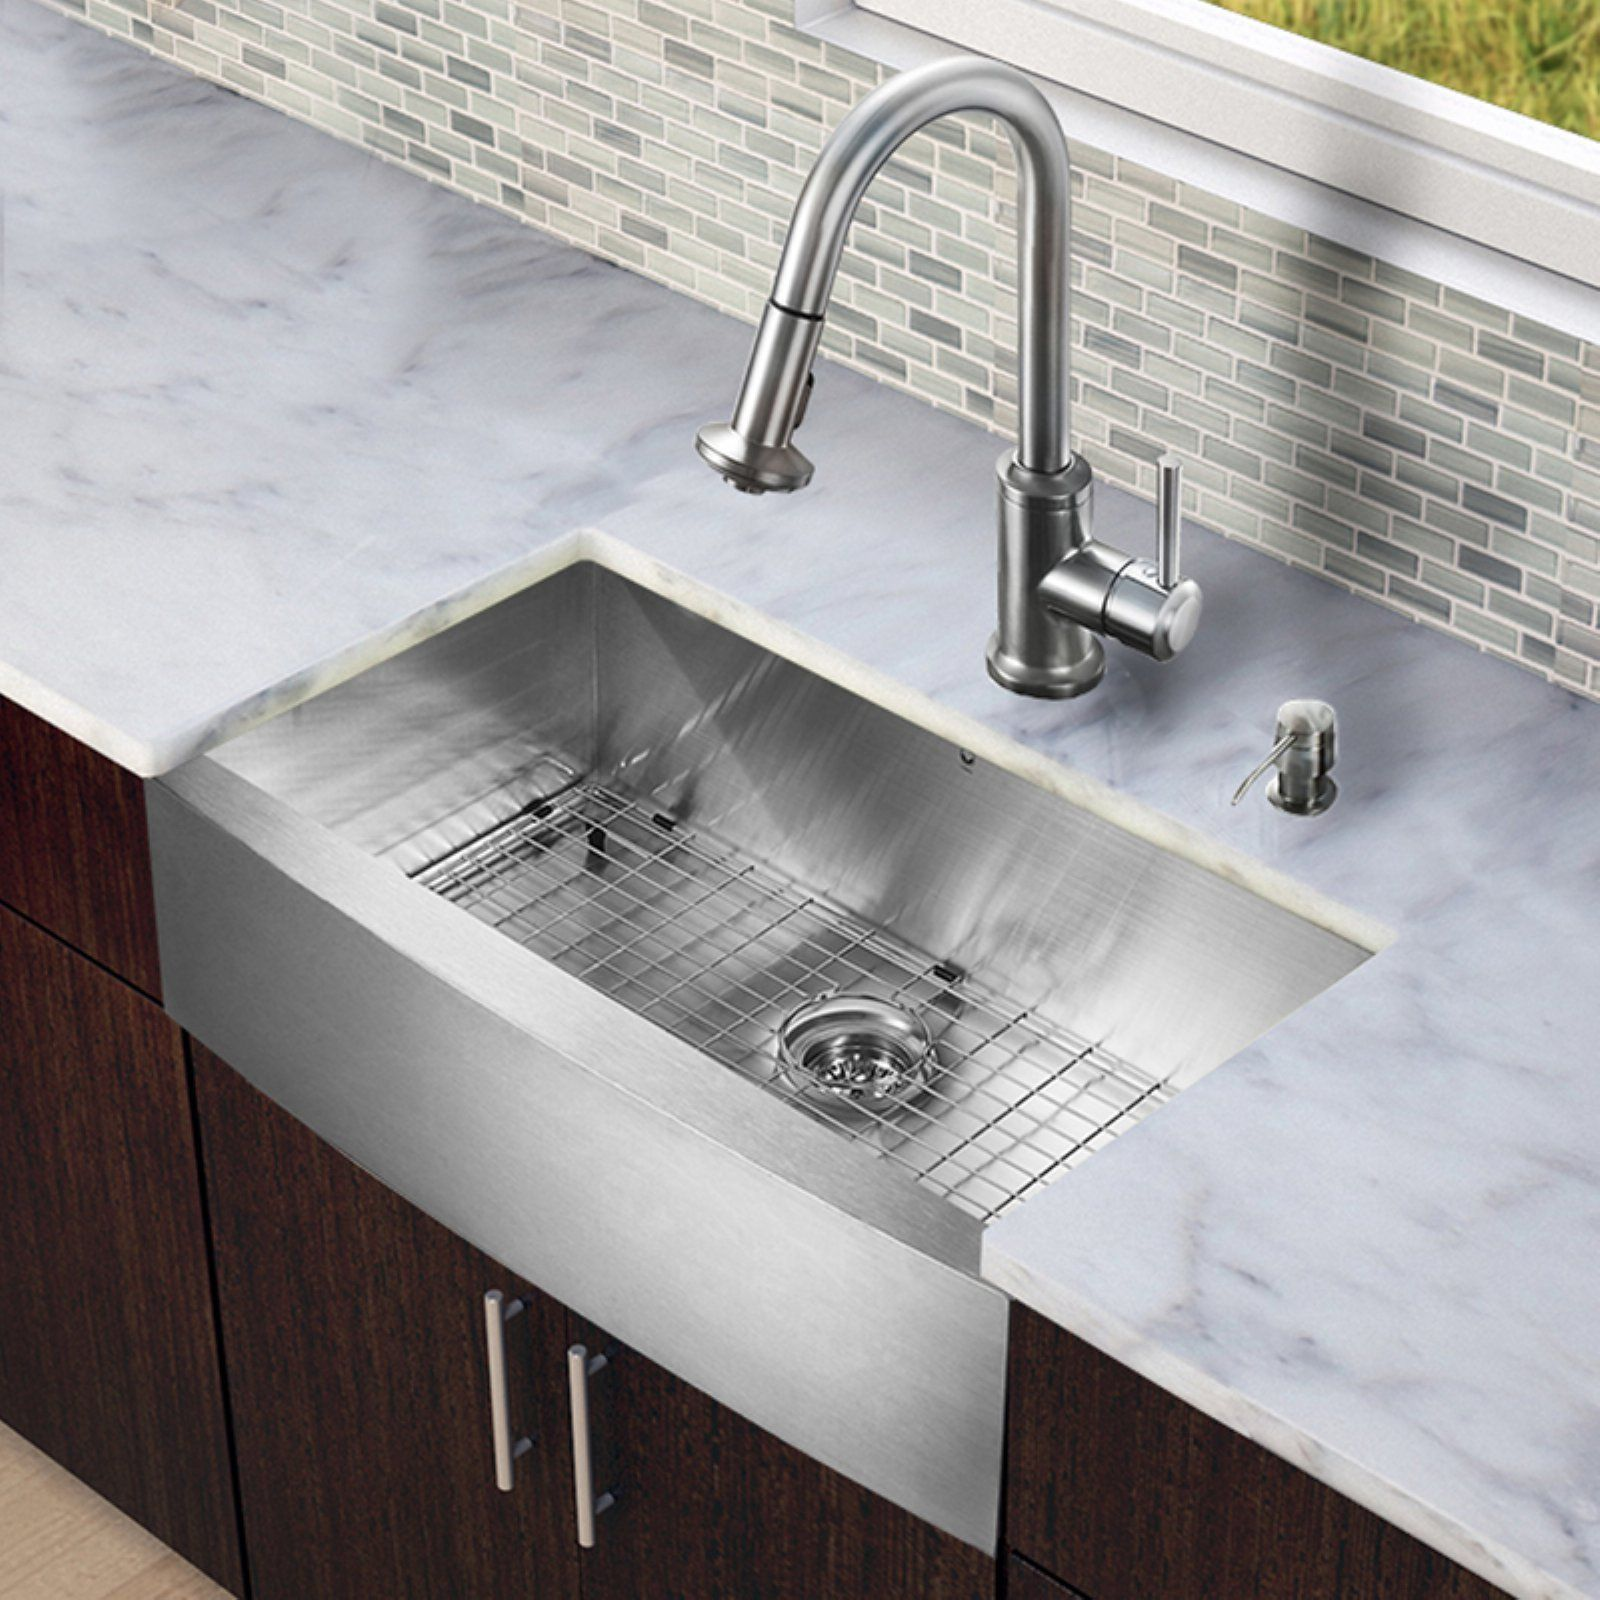 Vigo All In One Vg15242 Single Basin Farmhouse Kitchen Sink And